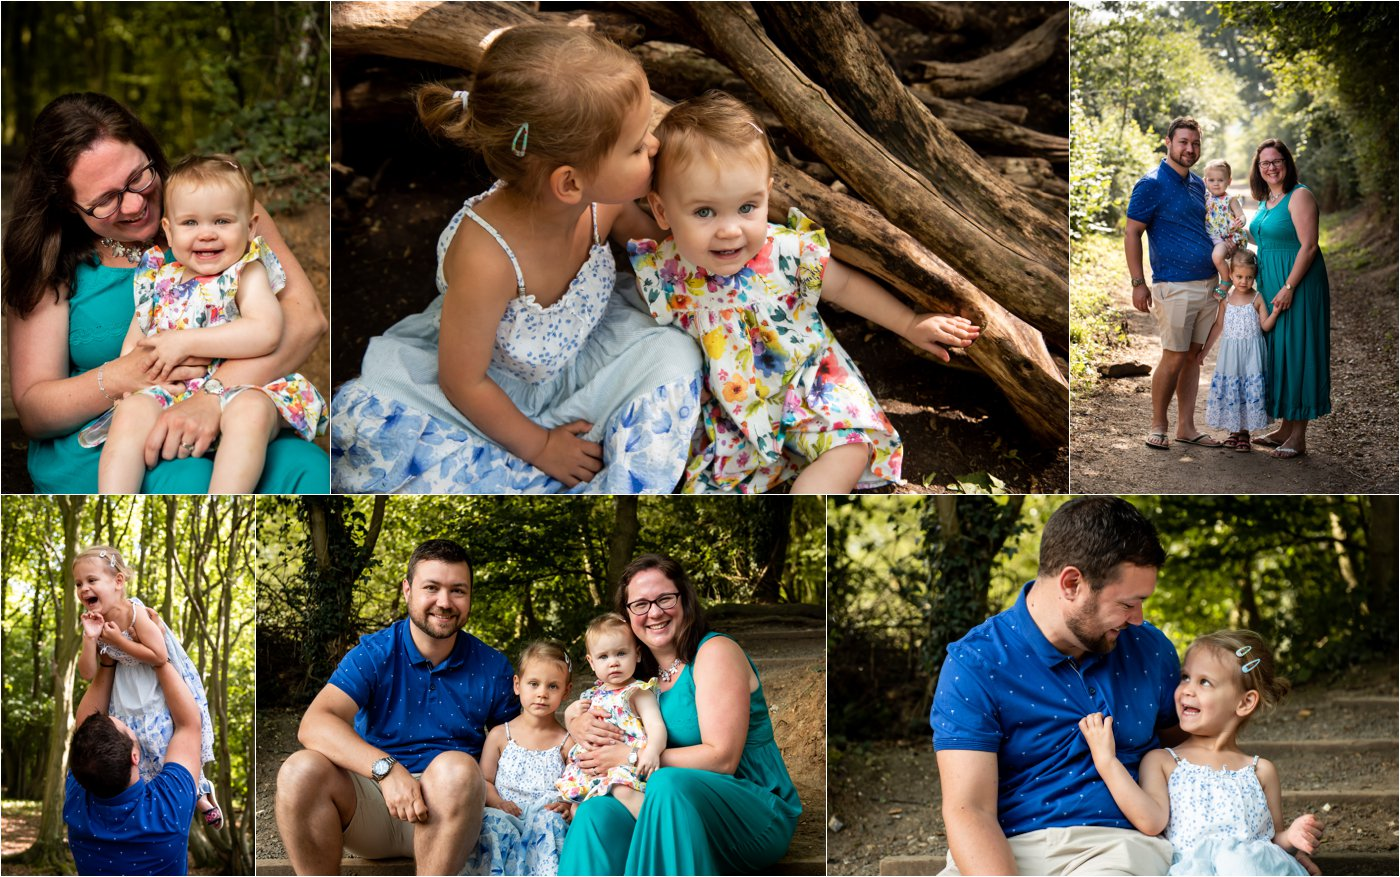 St Albans family photography shoot in summer